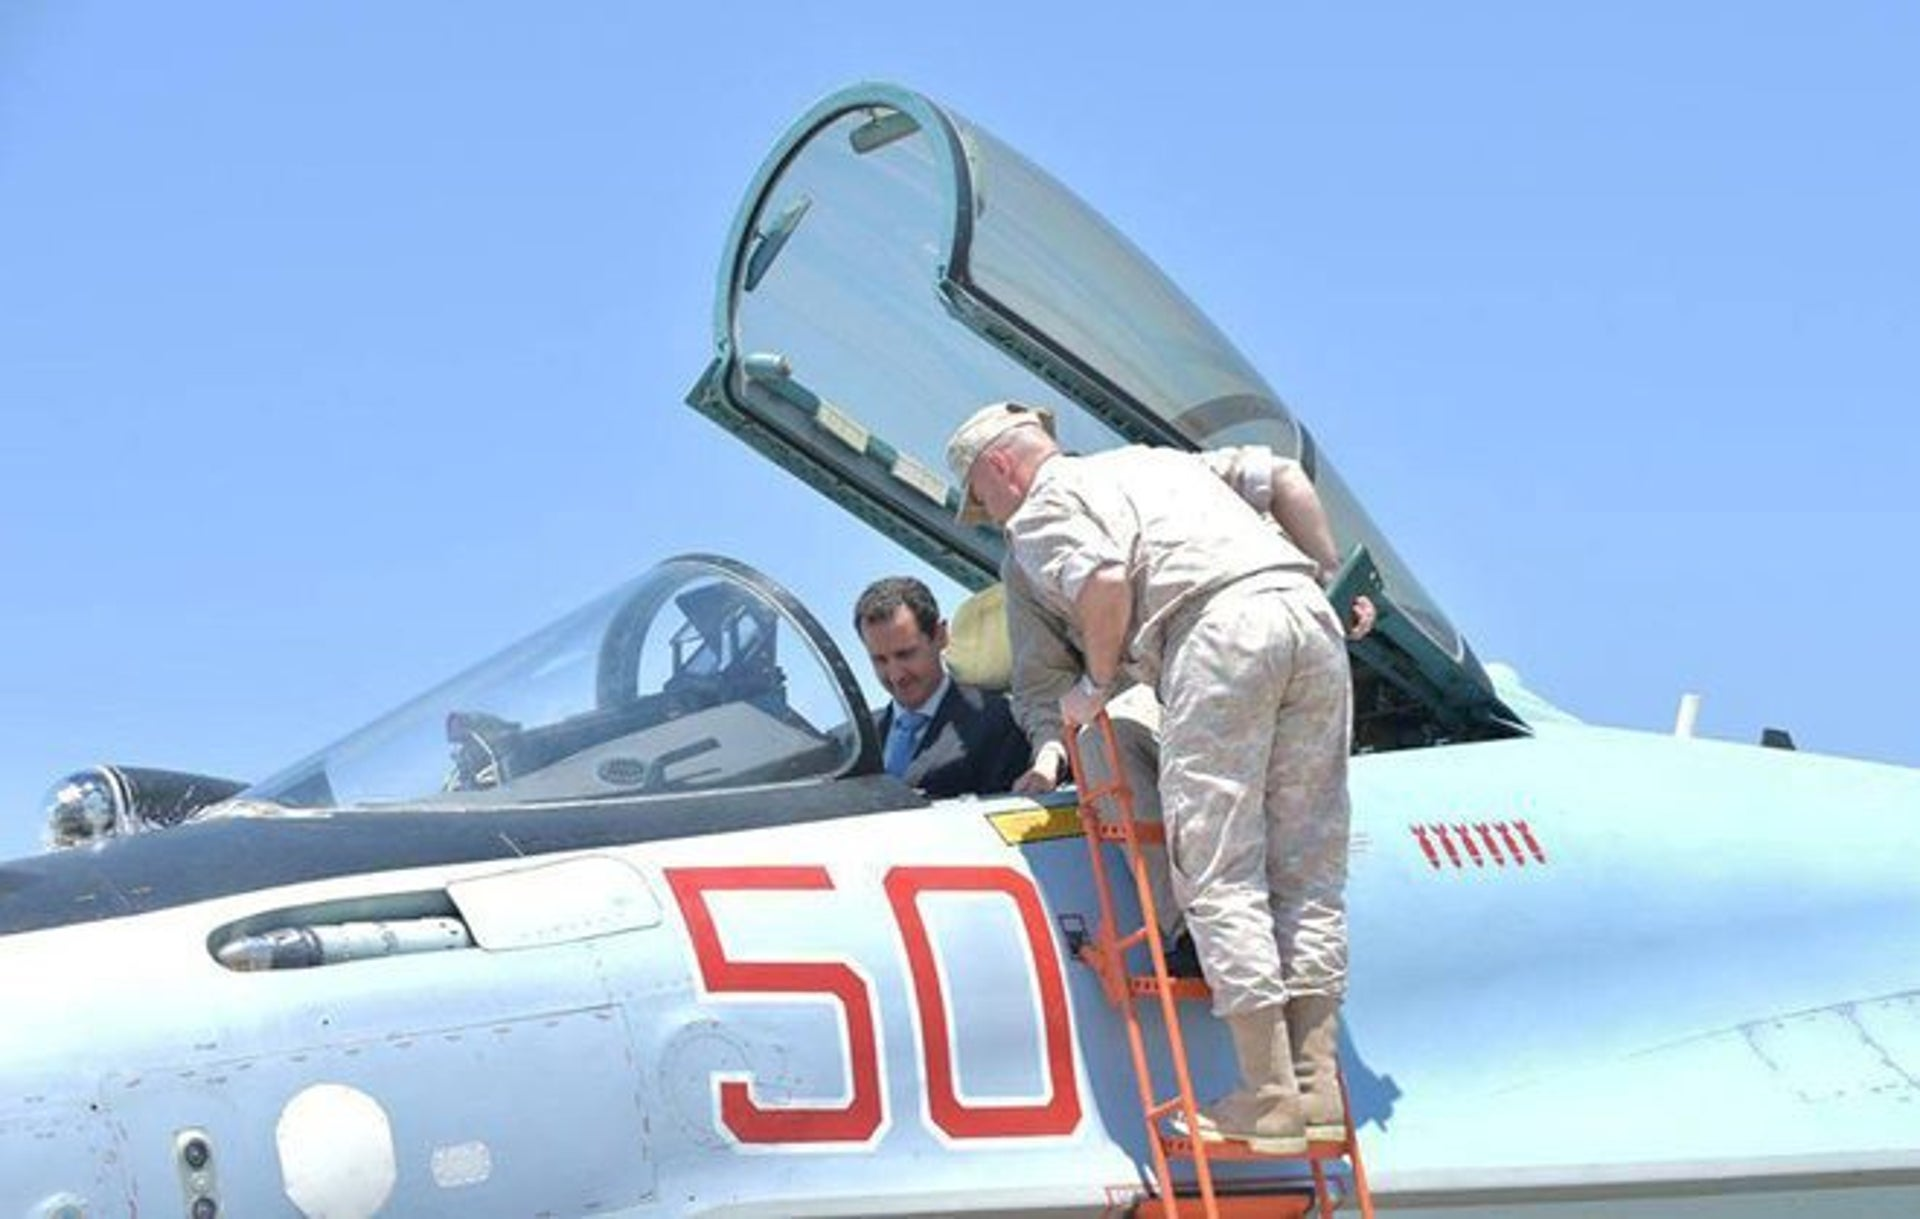 Syrian President Bashar Assad visits a Russian air base at Hmeymim, in western Syria in this handout picture posted on SANA on June 27, 2017.